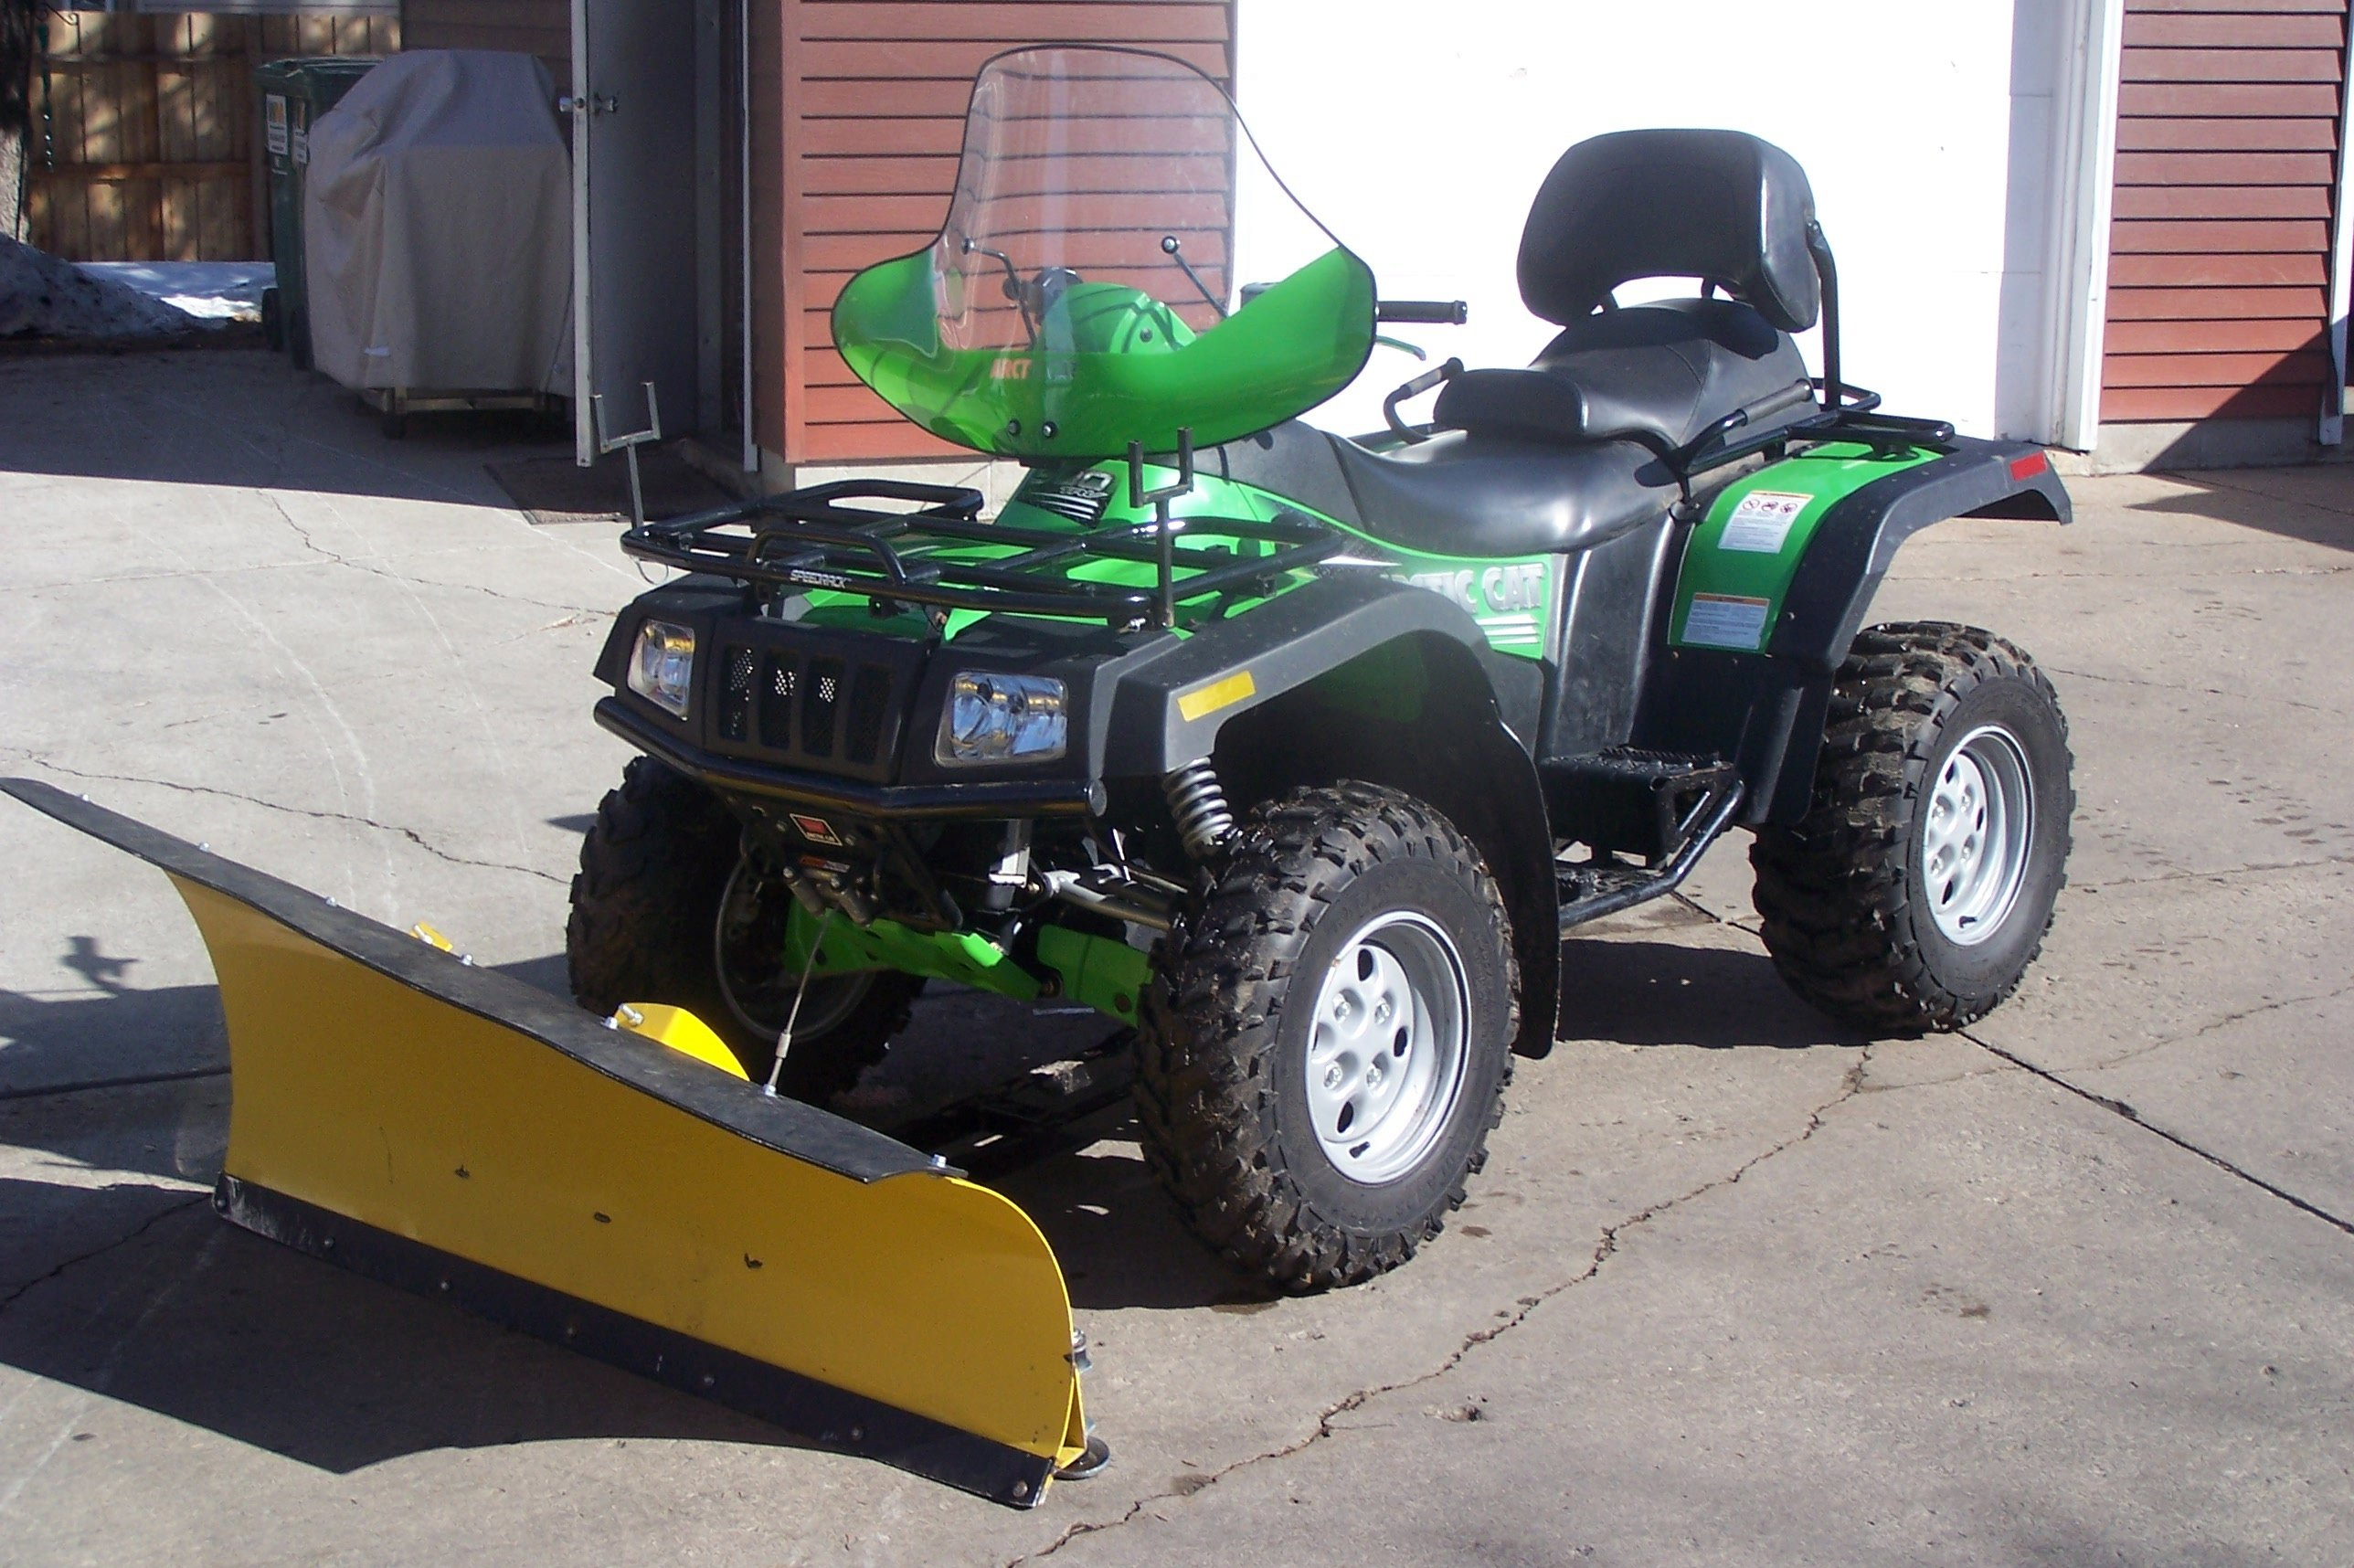 What are some good ATV snow plow kits?